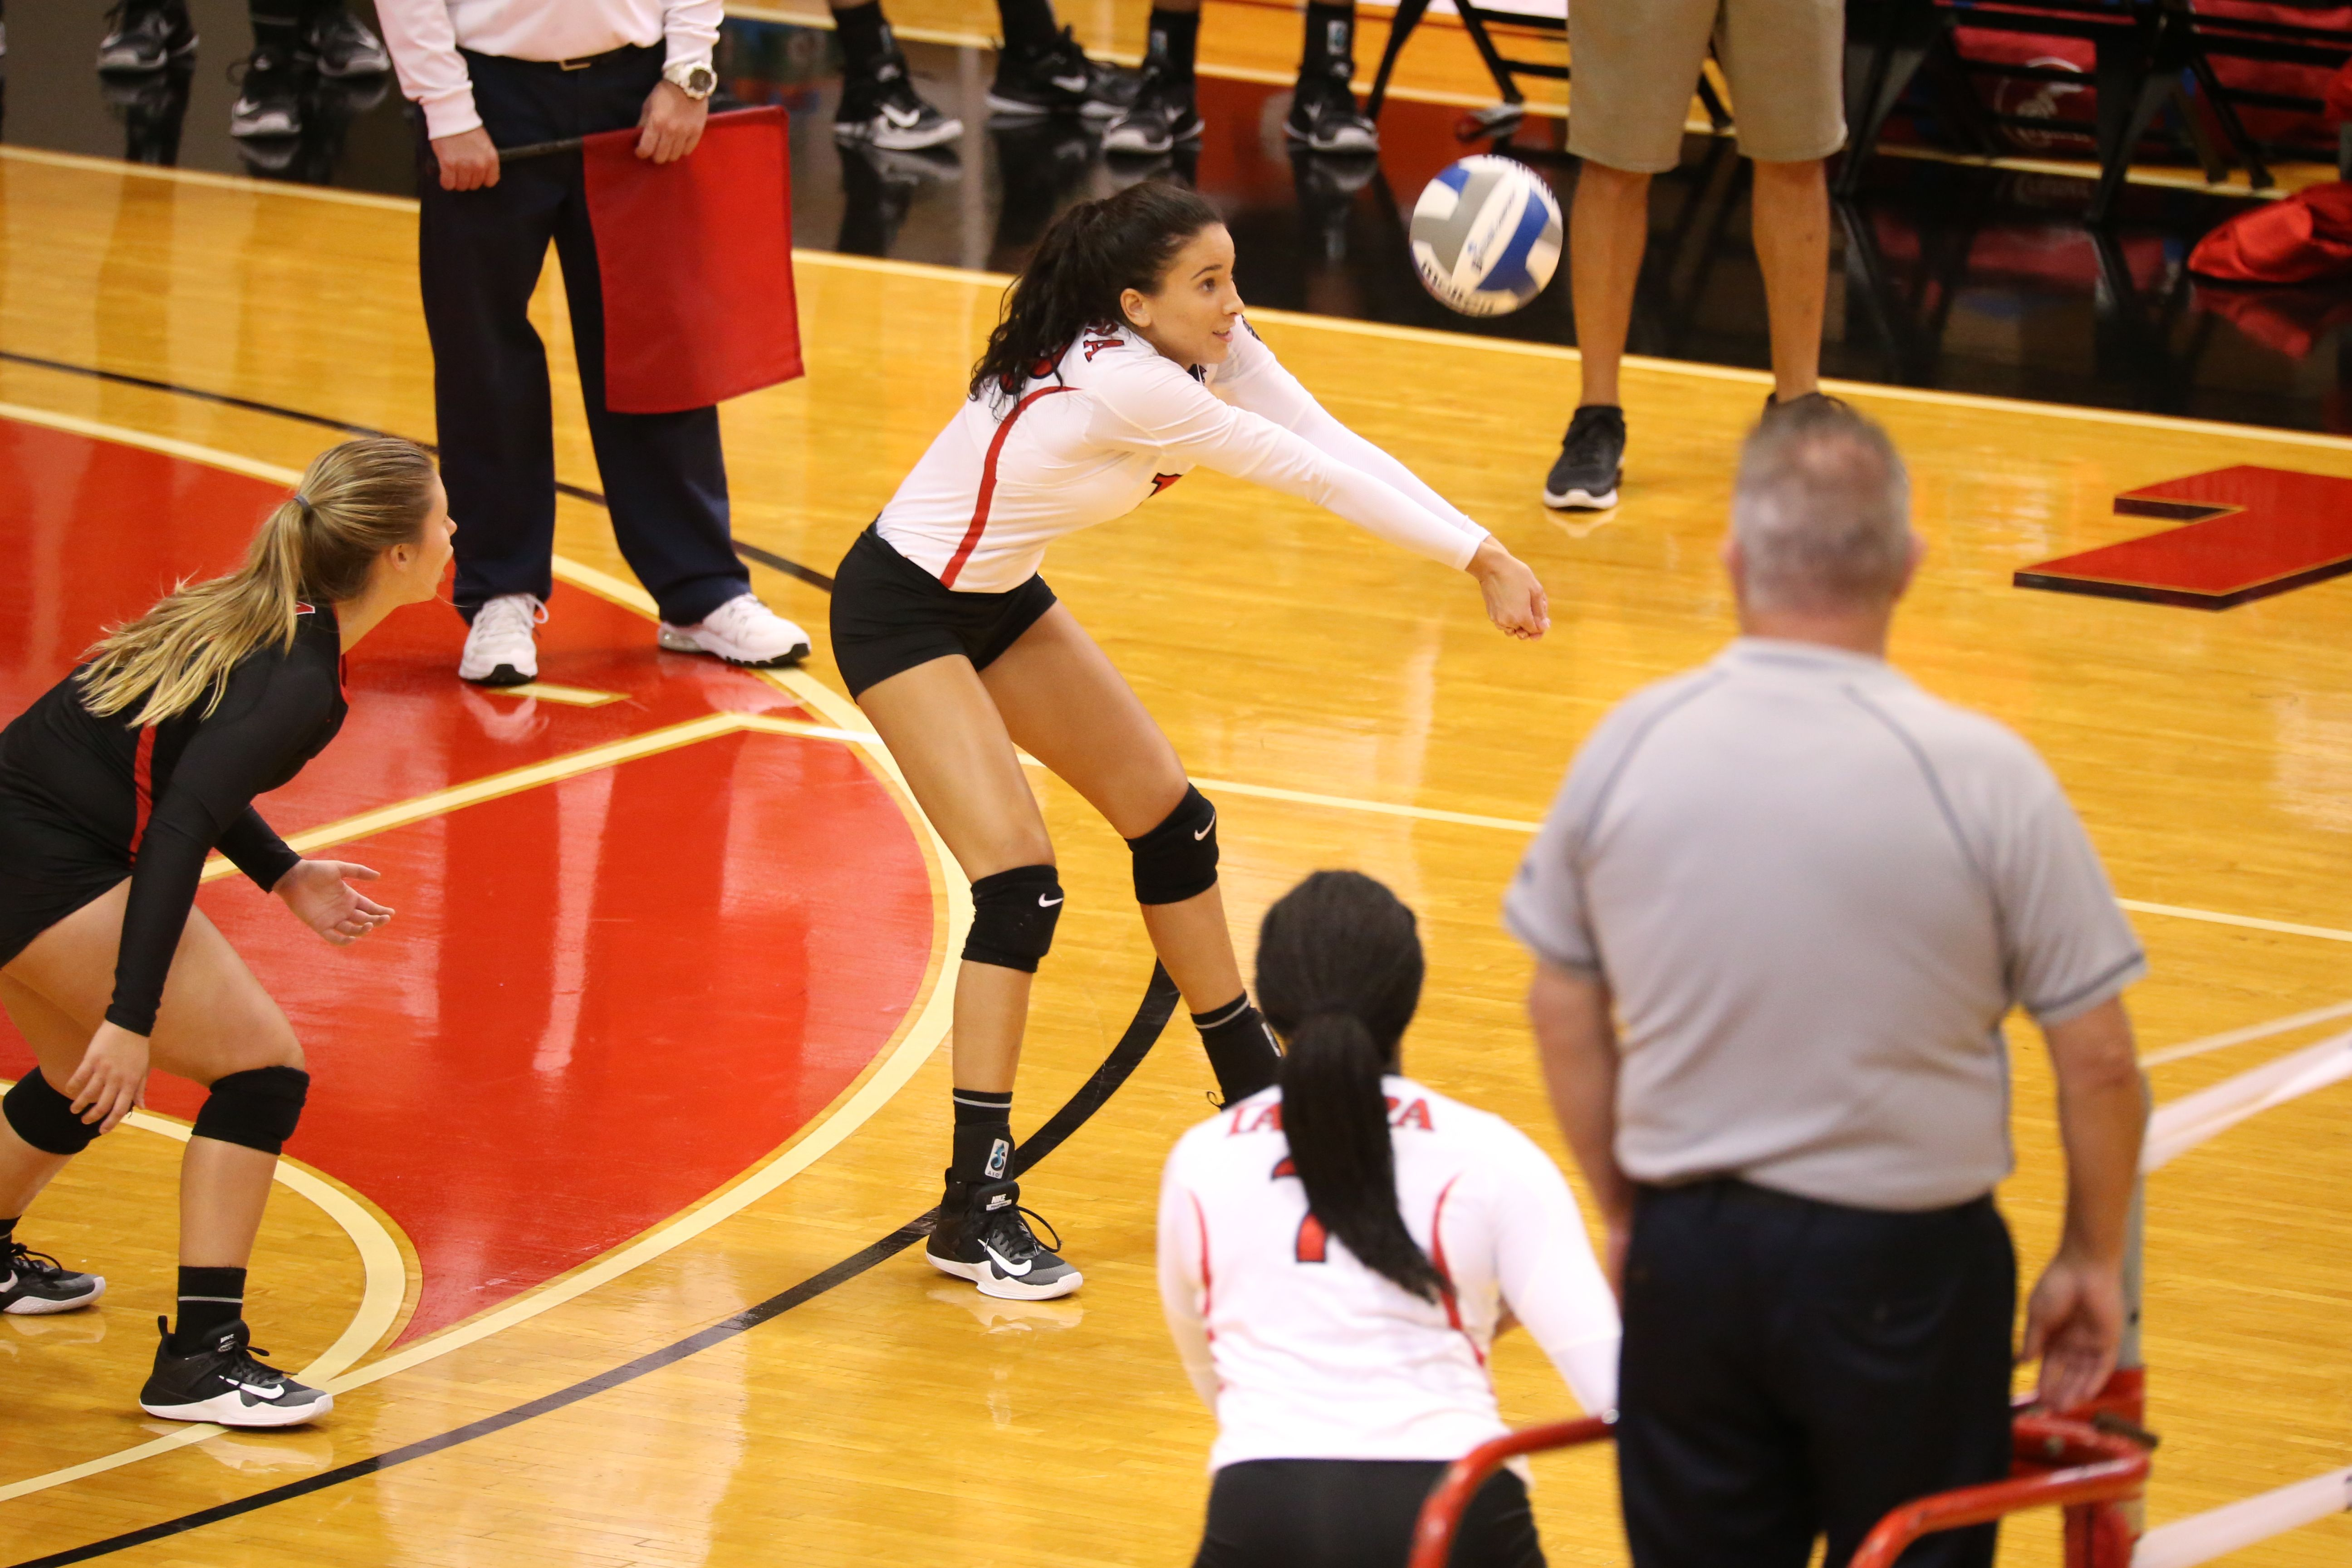 University Of Tampa Women S Volleyball With Images Women Volleyball University Of Tampa Athlete